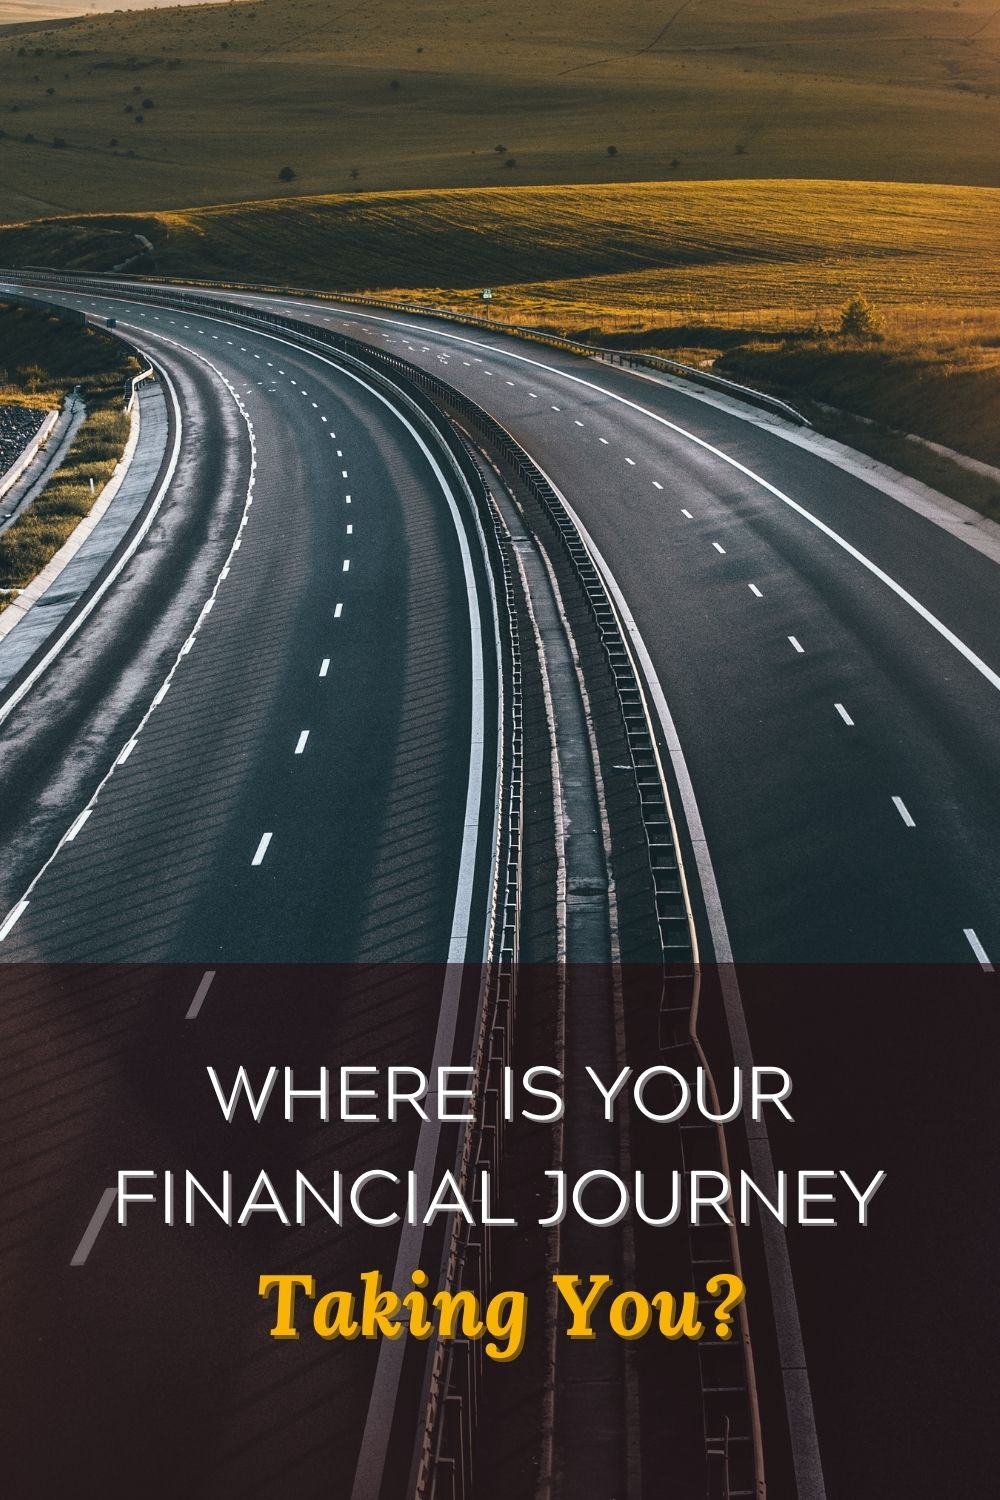 Where is Your Financial Journey Taking You?